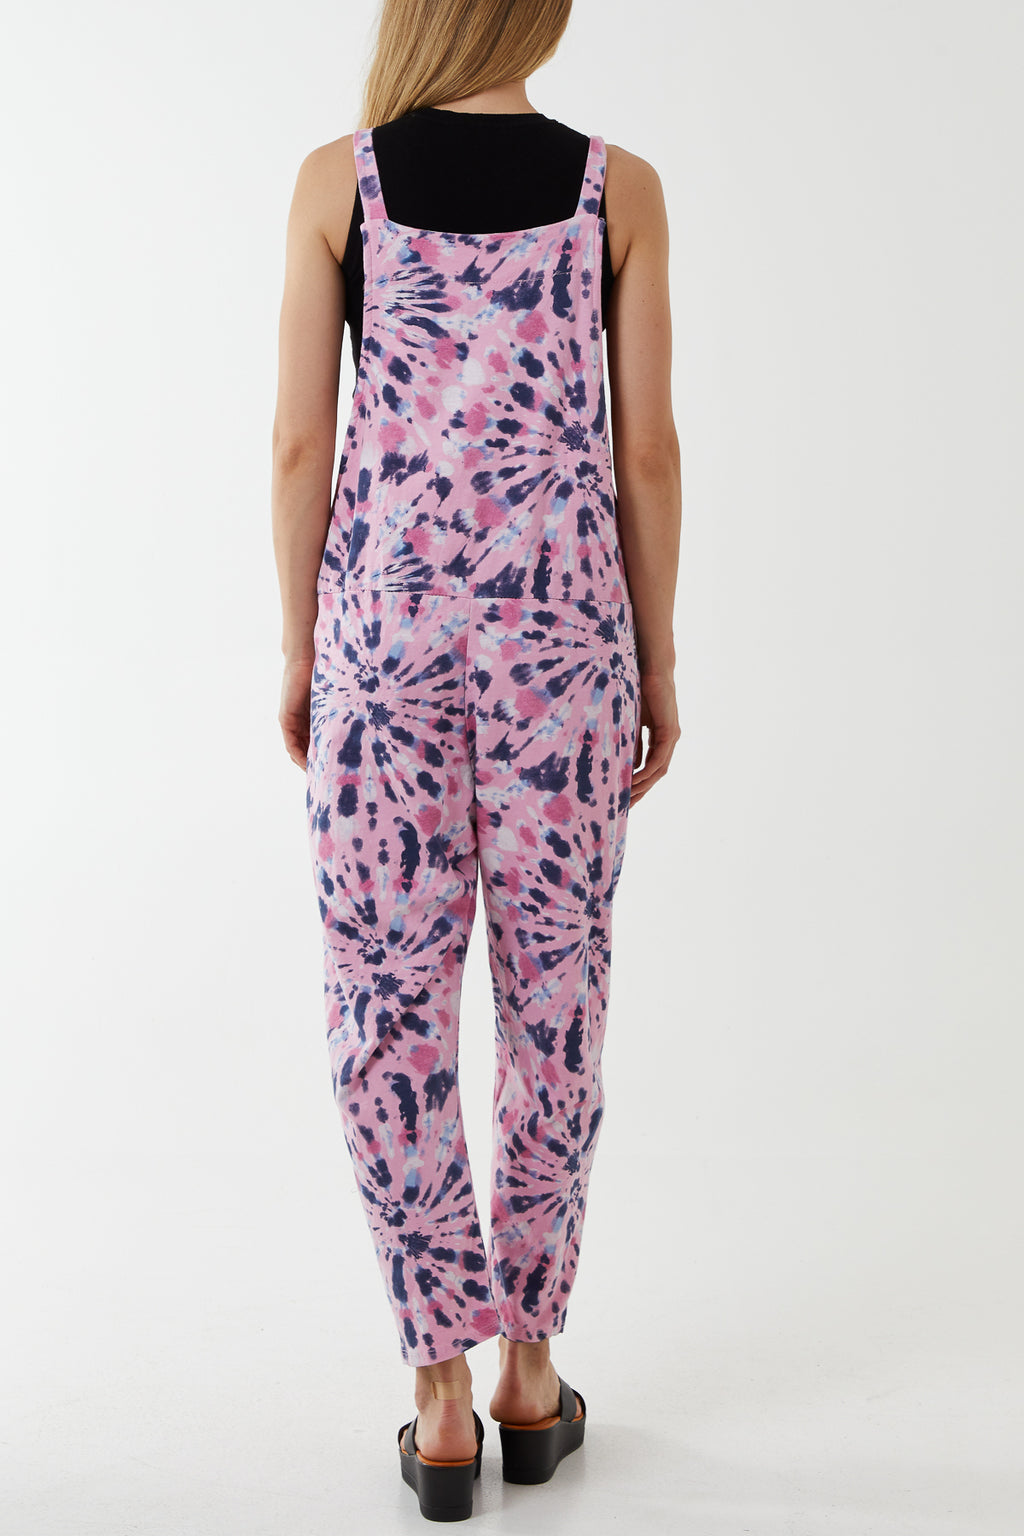 Flower Pattern Dungarees 3/4 Length